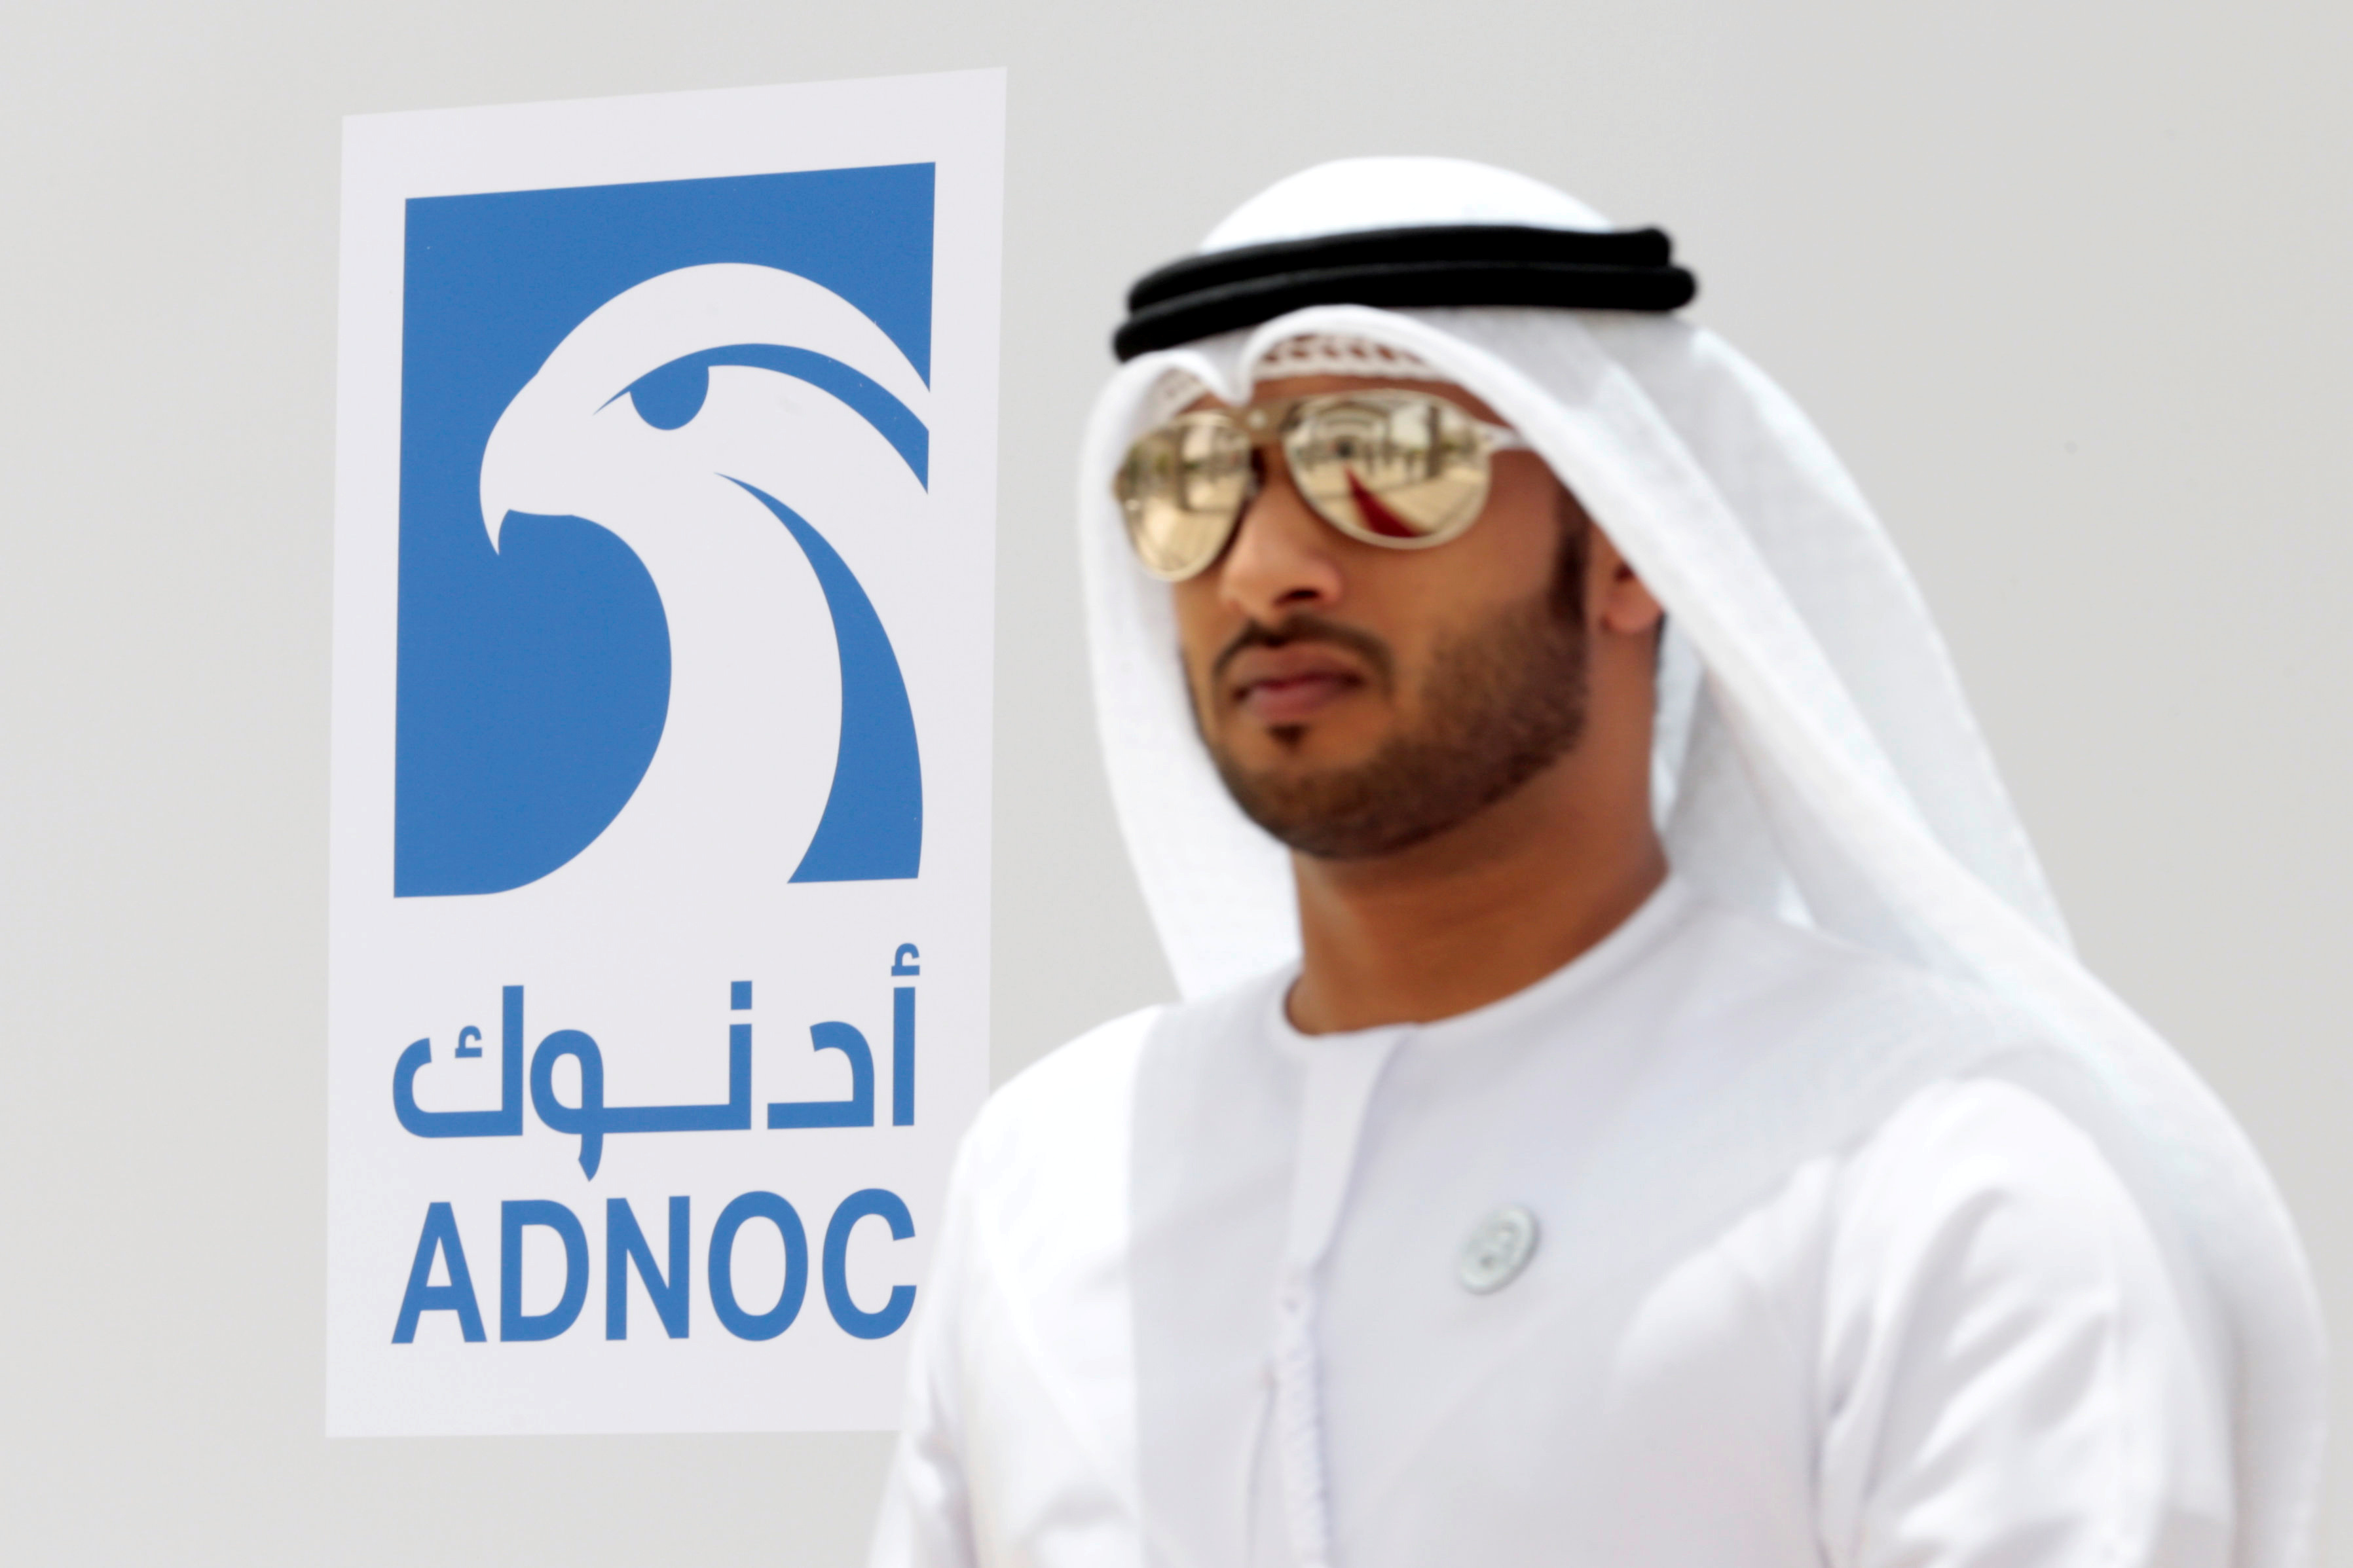 An Emirati man is seen near the logo of  ADNOC in Ruwais, United Arab Emirates May 14, 2018. Picture taken May 14, 2018. REUTERS/Christopher Pike/File Photo